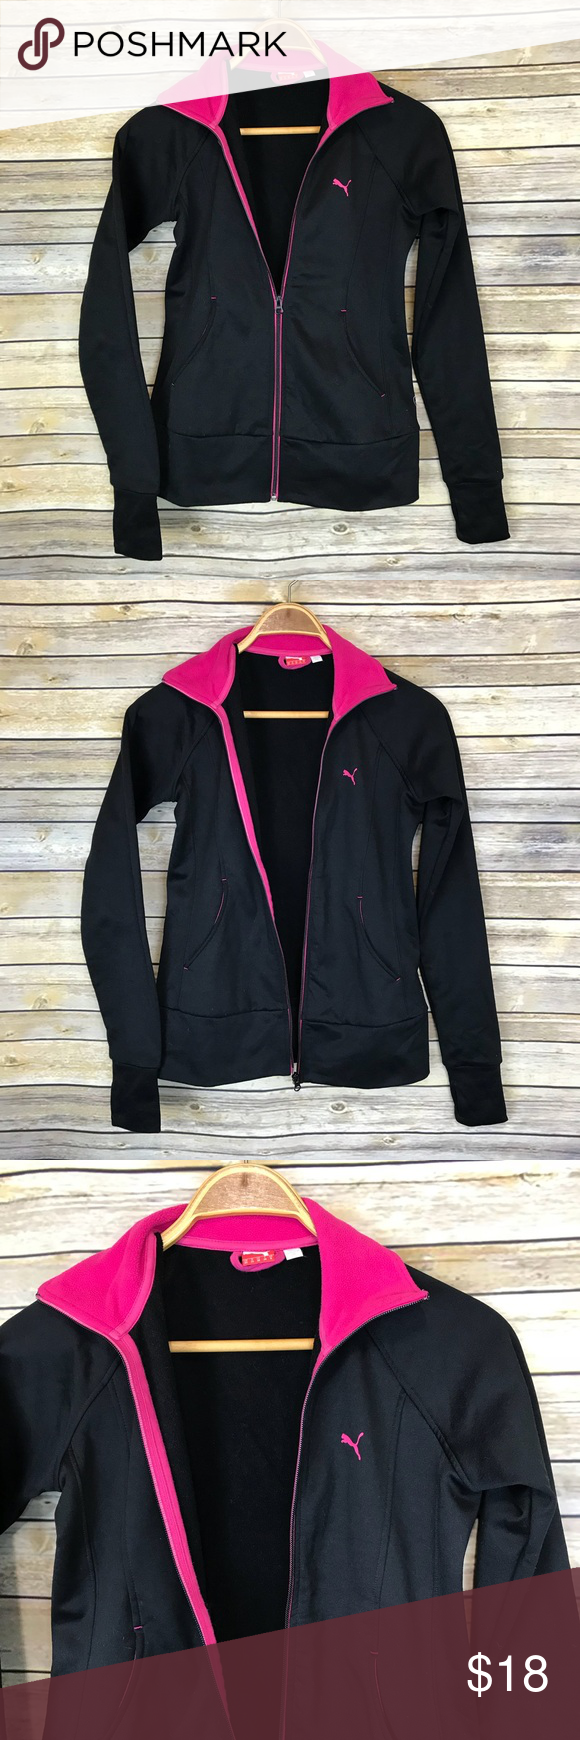 Puma Black Pink Full Zip Athletic Jacket Xs Puma Women S Size Xs In Good Condition No Issues 100 Polyester Me Athletic Jacket Jackets Puma Jackets [ 1740 x 580 Pixel ]